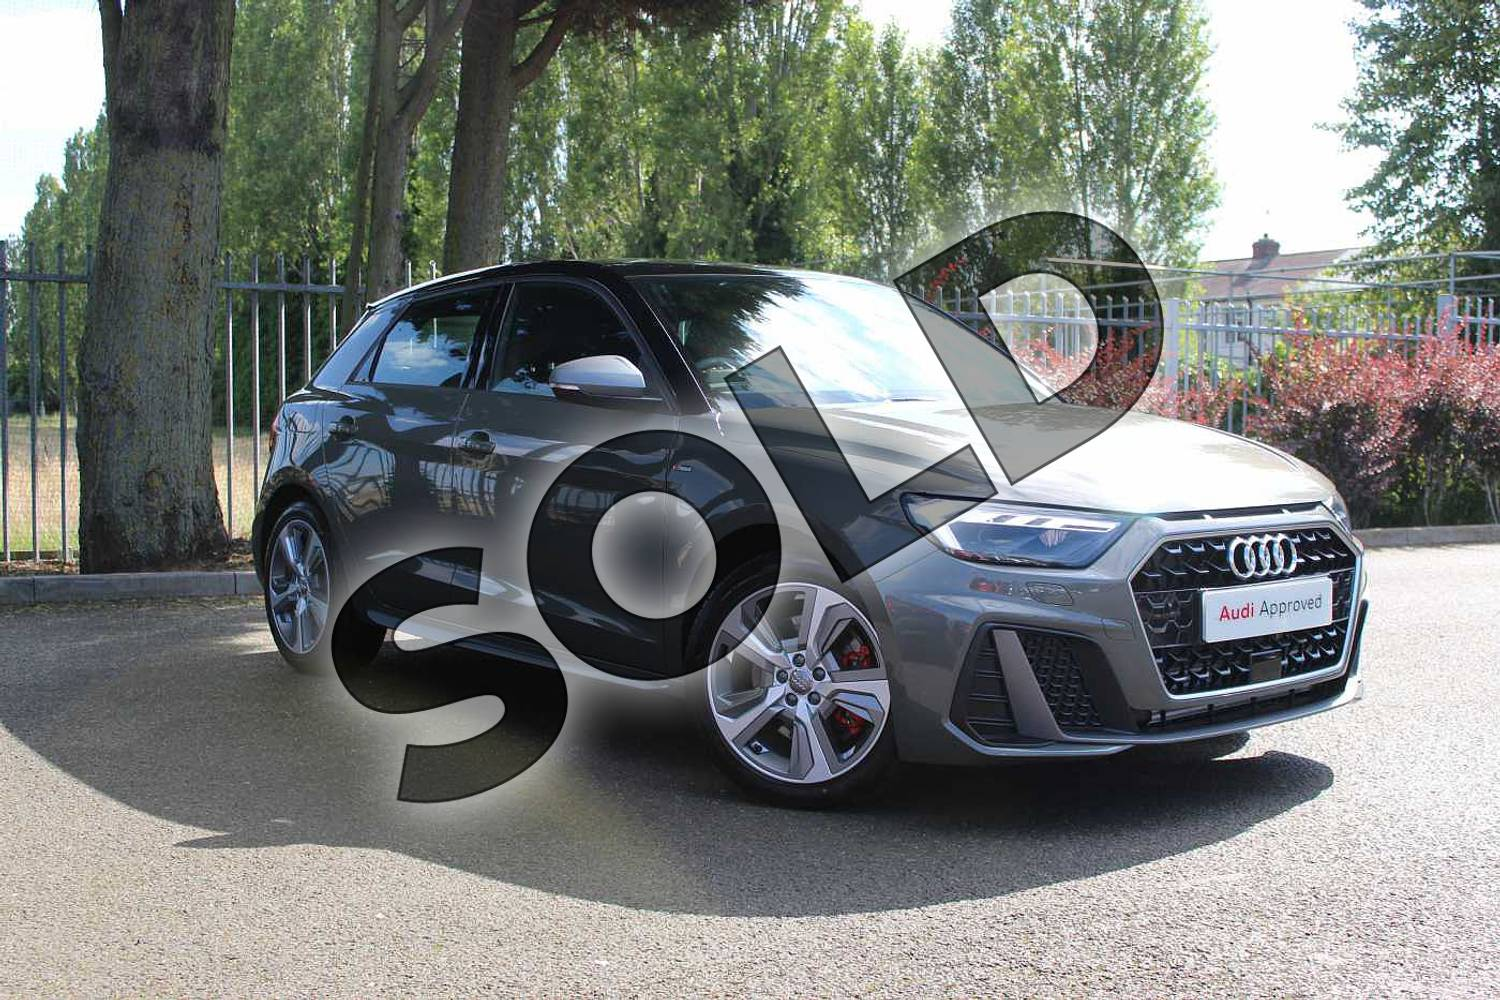 2019 Audi A1 Sportback 40 TFSI S Line Competition 5dr S Tronic in Chronos Grey Metallic at Coventry Audi